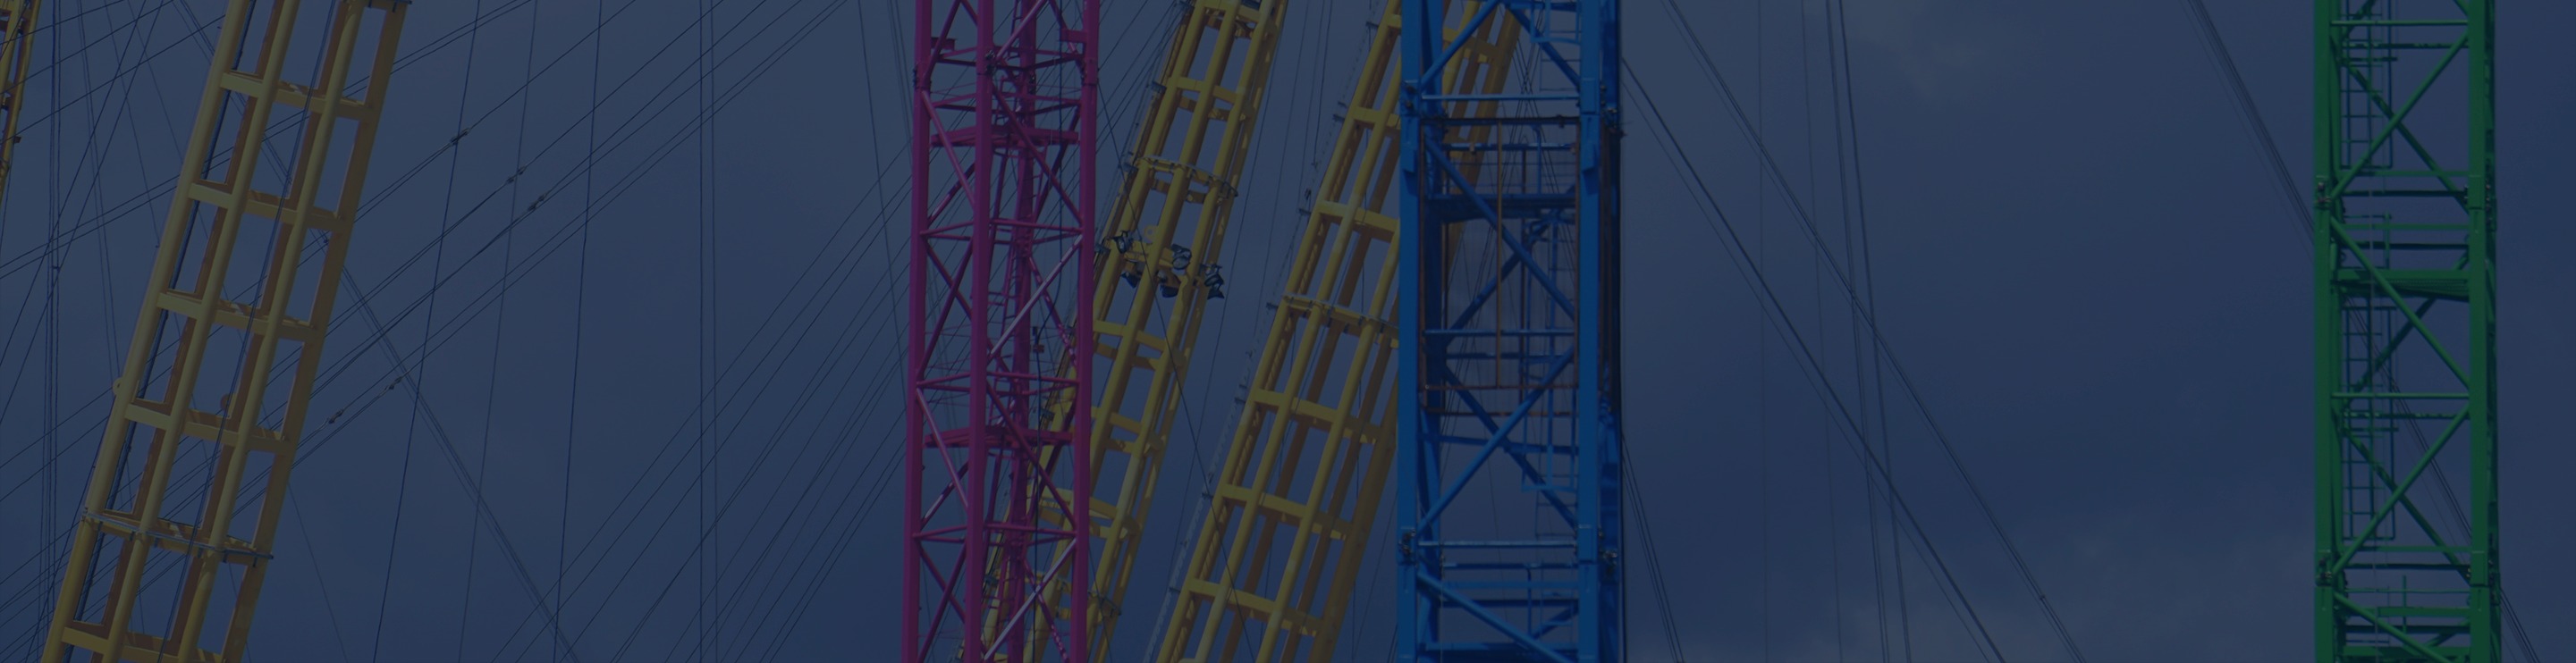 Colourful transmission towers in yellow, magenta, blue, and green.